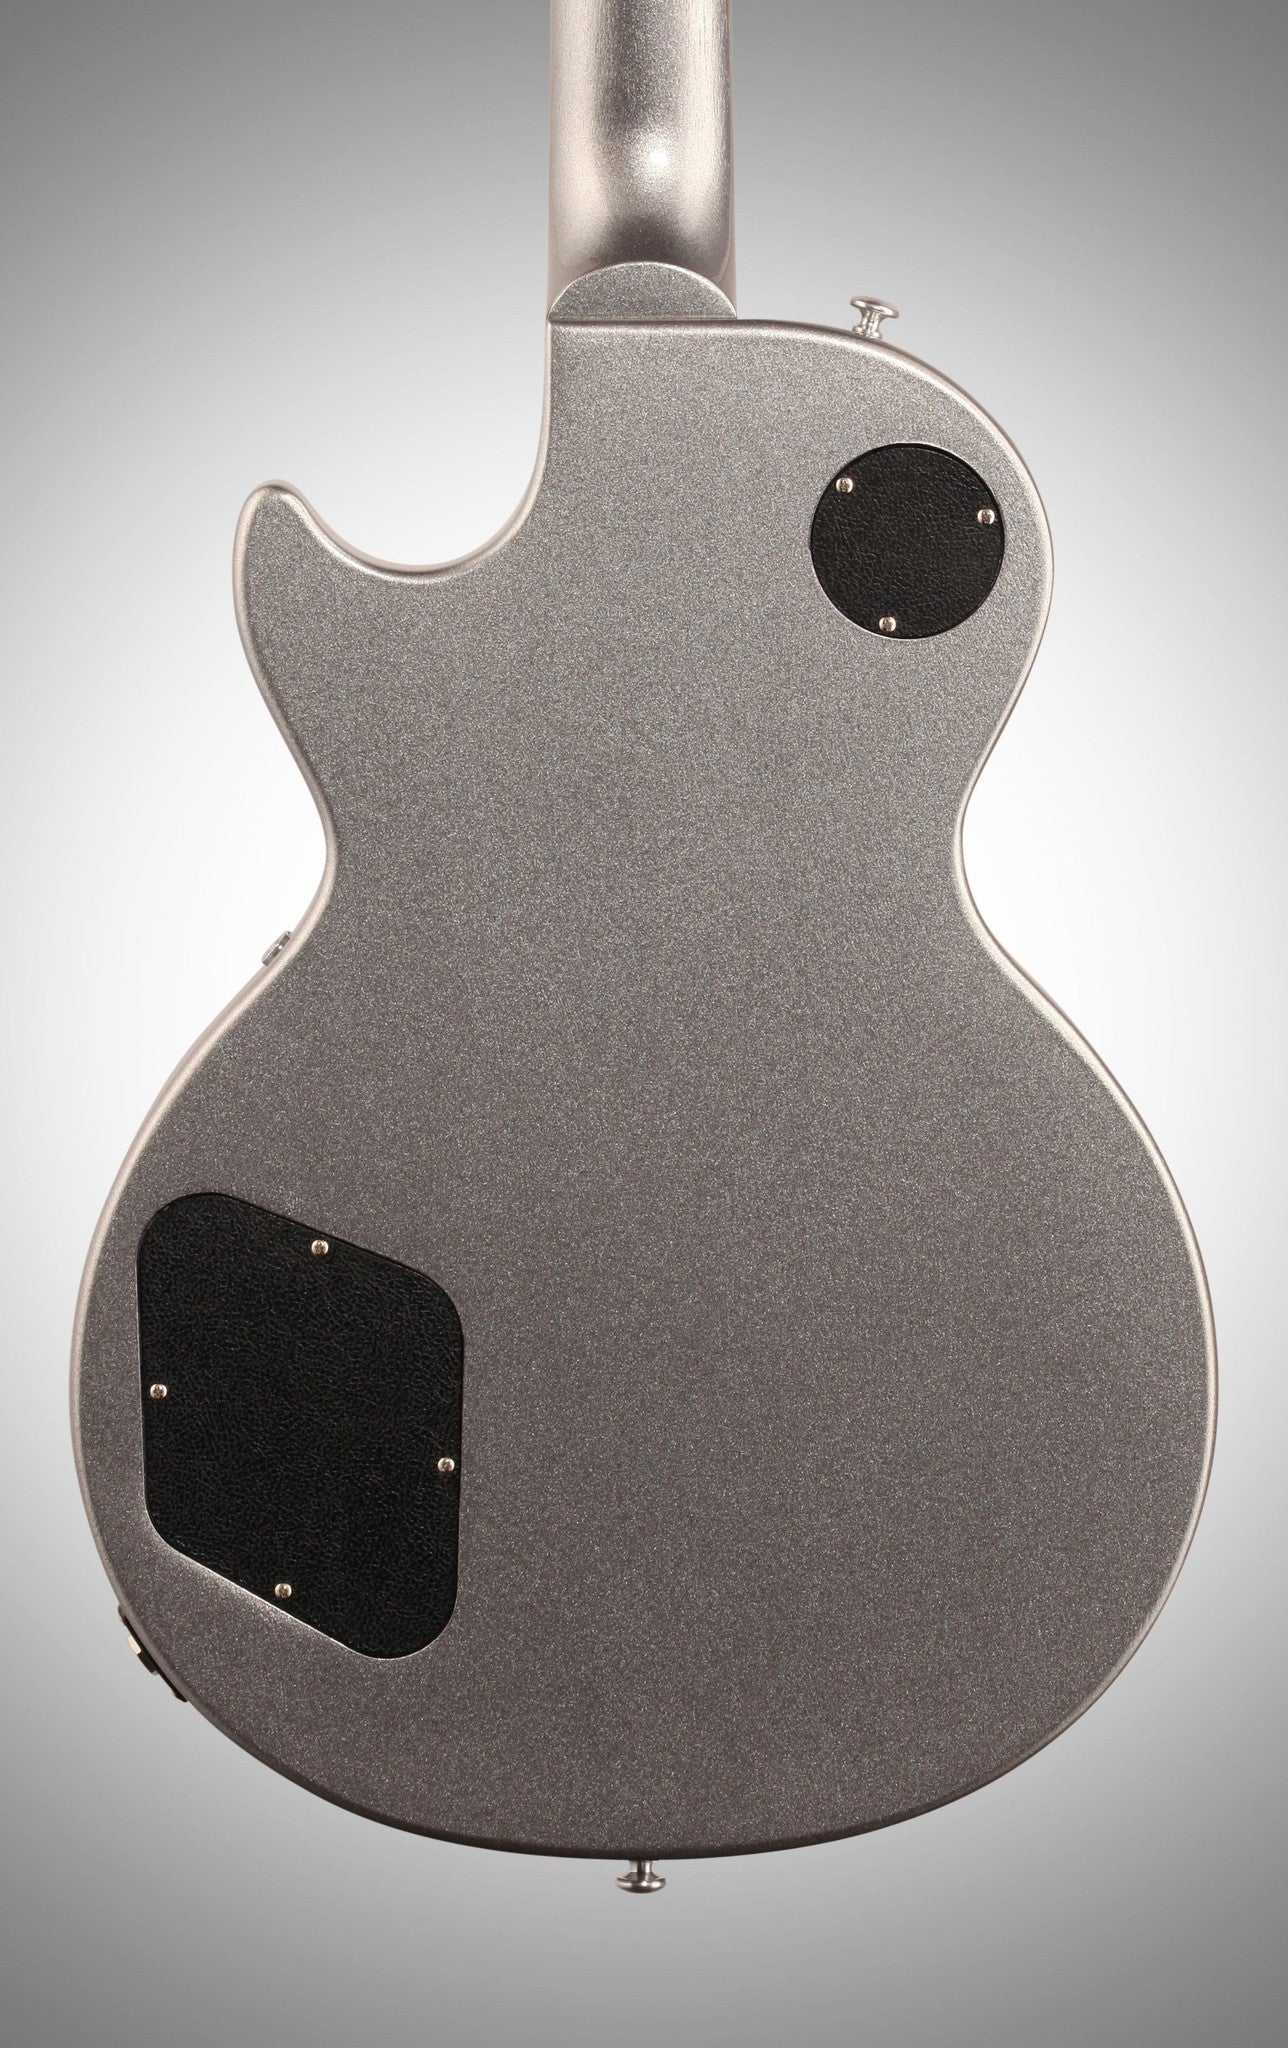 Gibson 2016 Les Paul Studio T Electric Guitar (with Case), Silver Pearl Gibson - HIENDGUITAR.COM